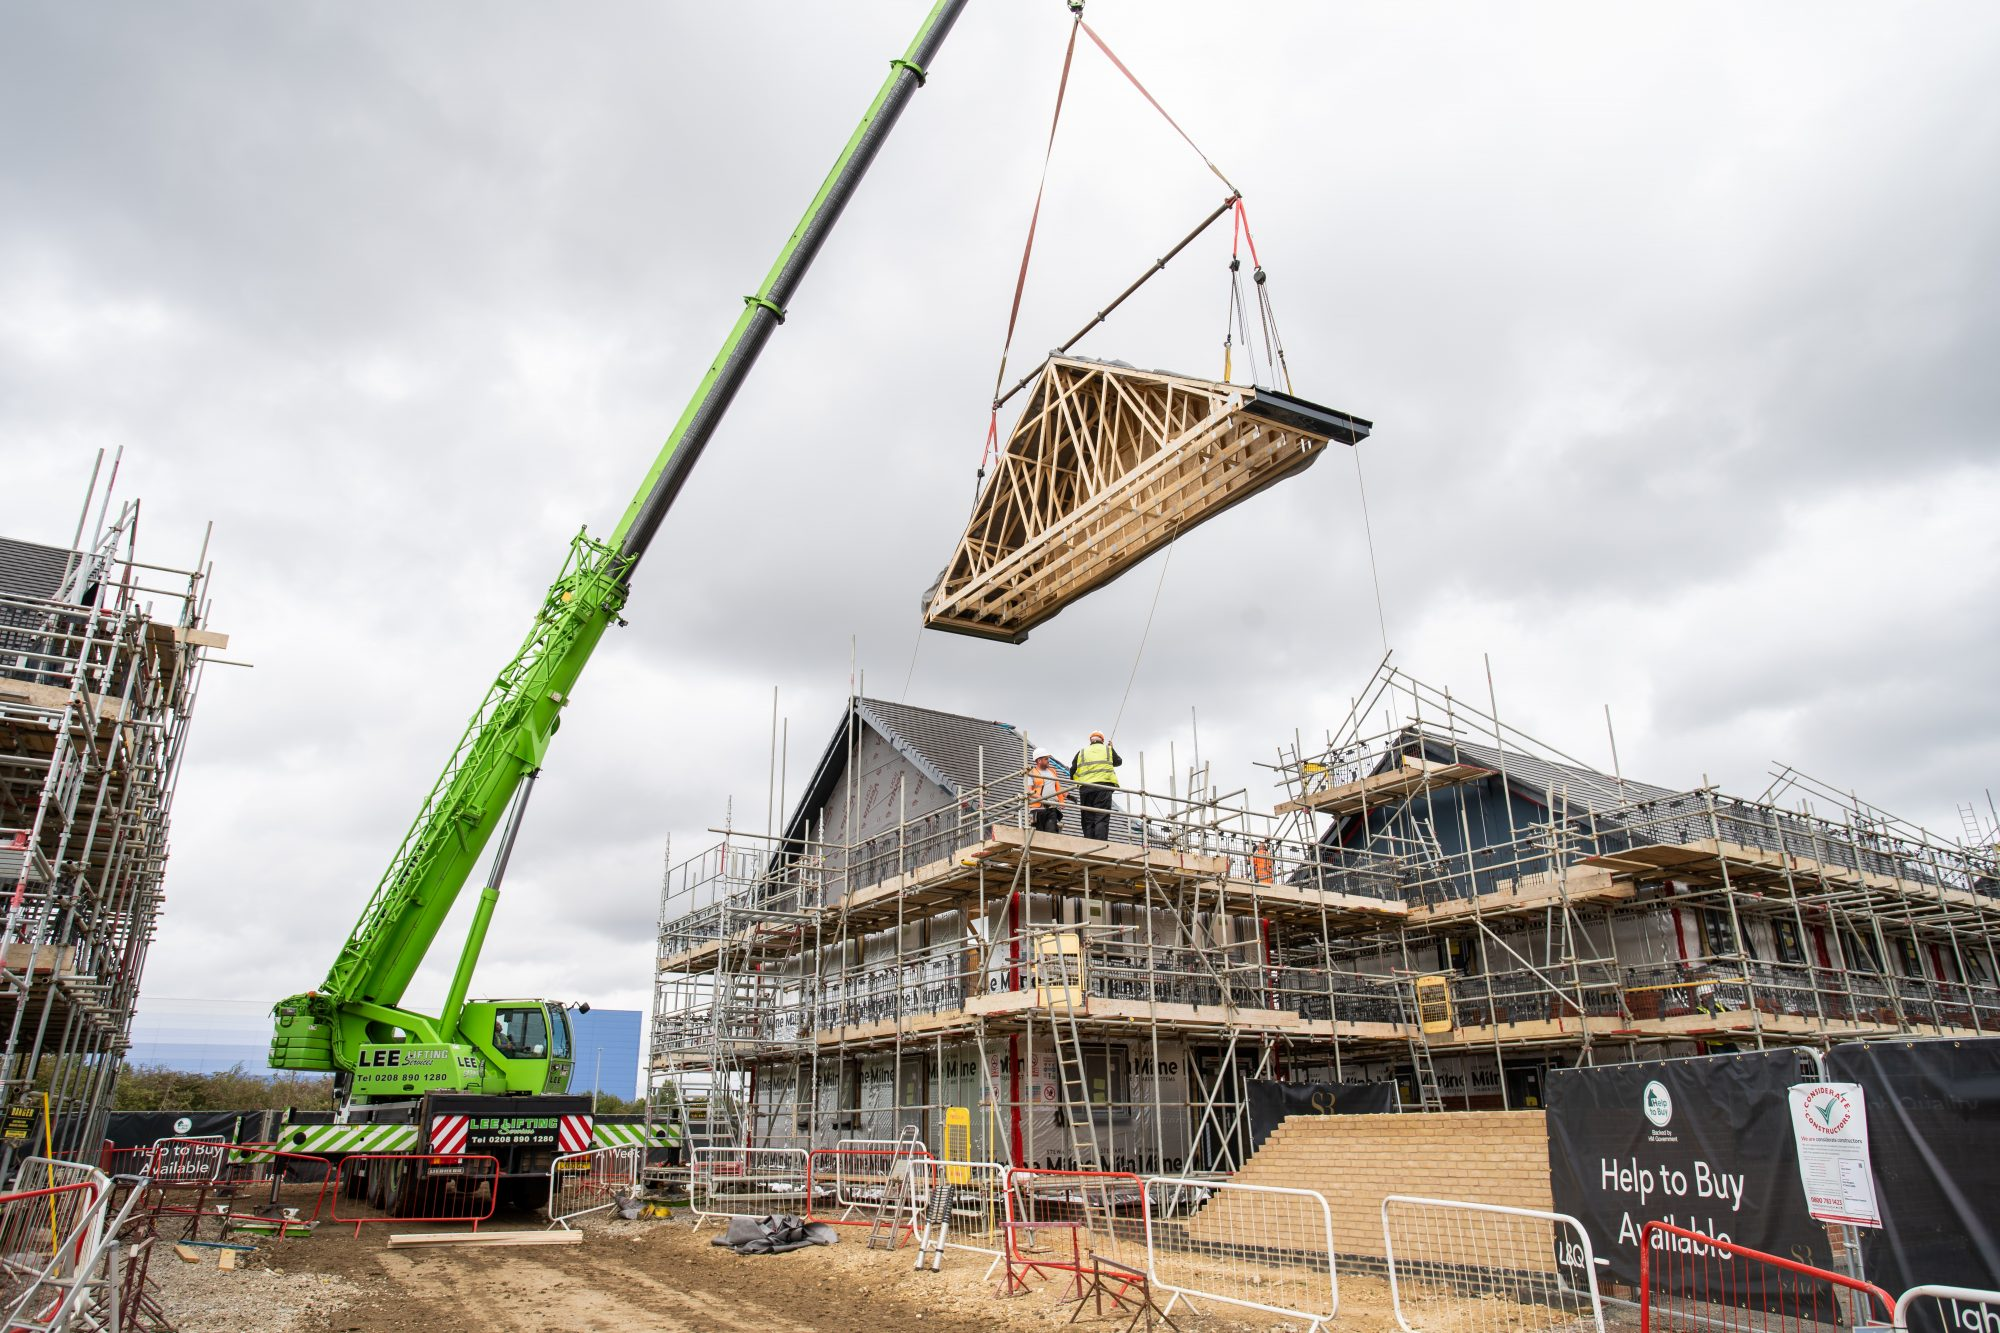 TRANSFORMATIONAL HOUSEBUILDING PROJECT CALLS FOR GAME-CHANGING SOLUTIONS TO INNOVATION CHALLENGE